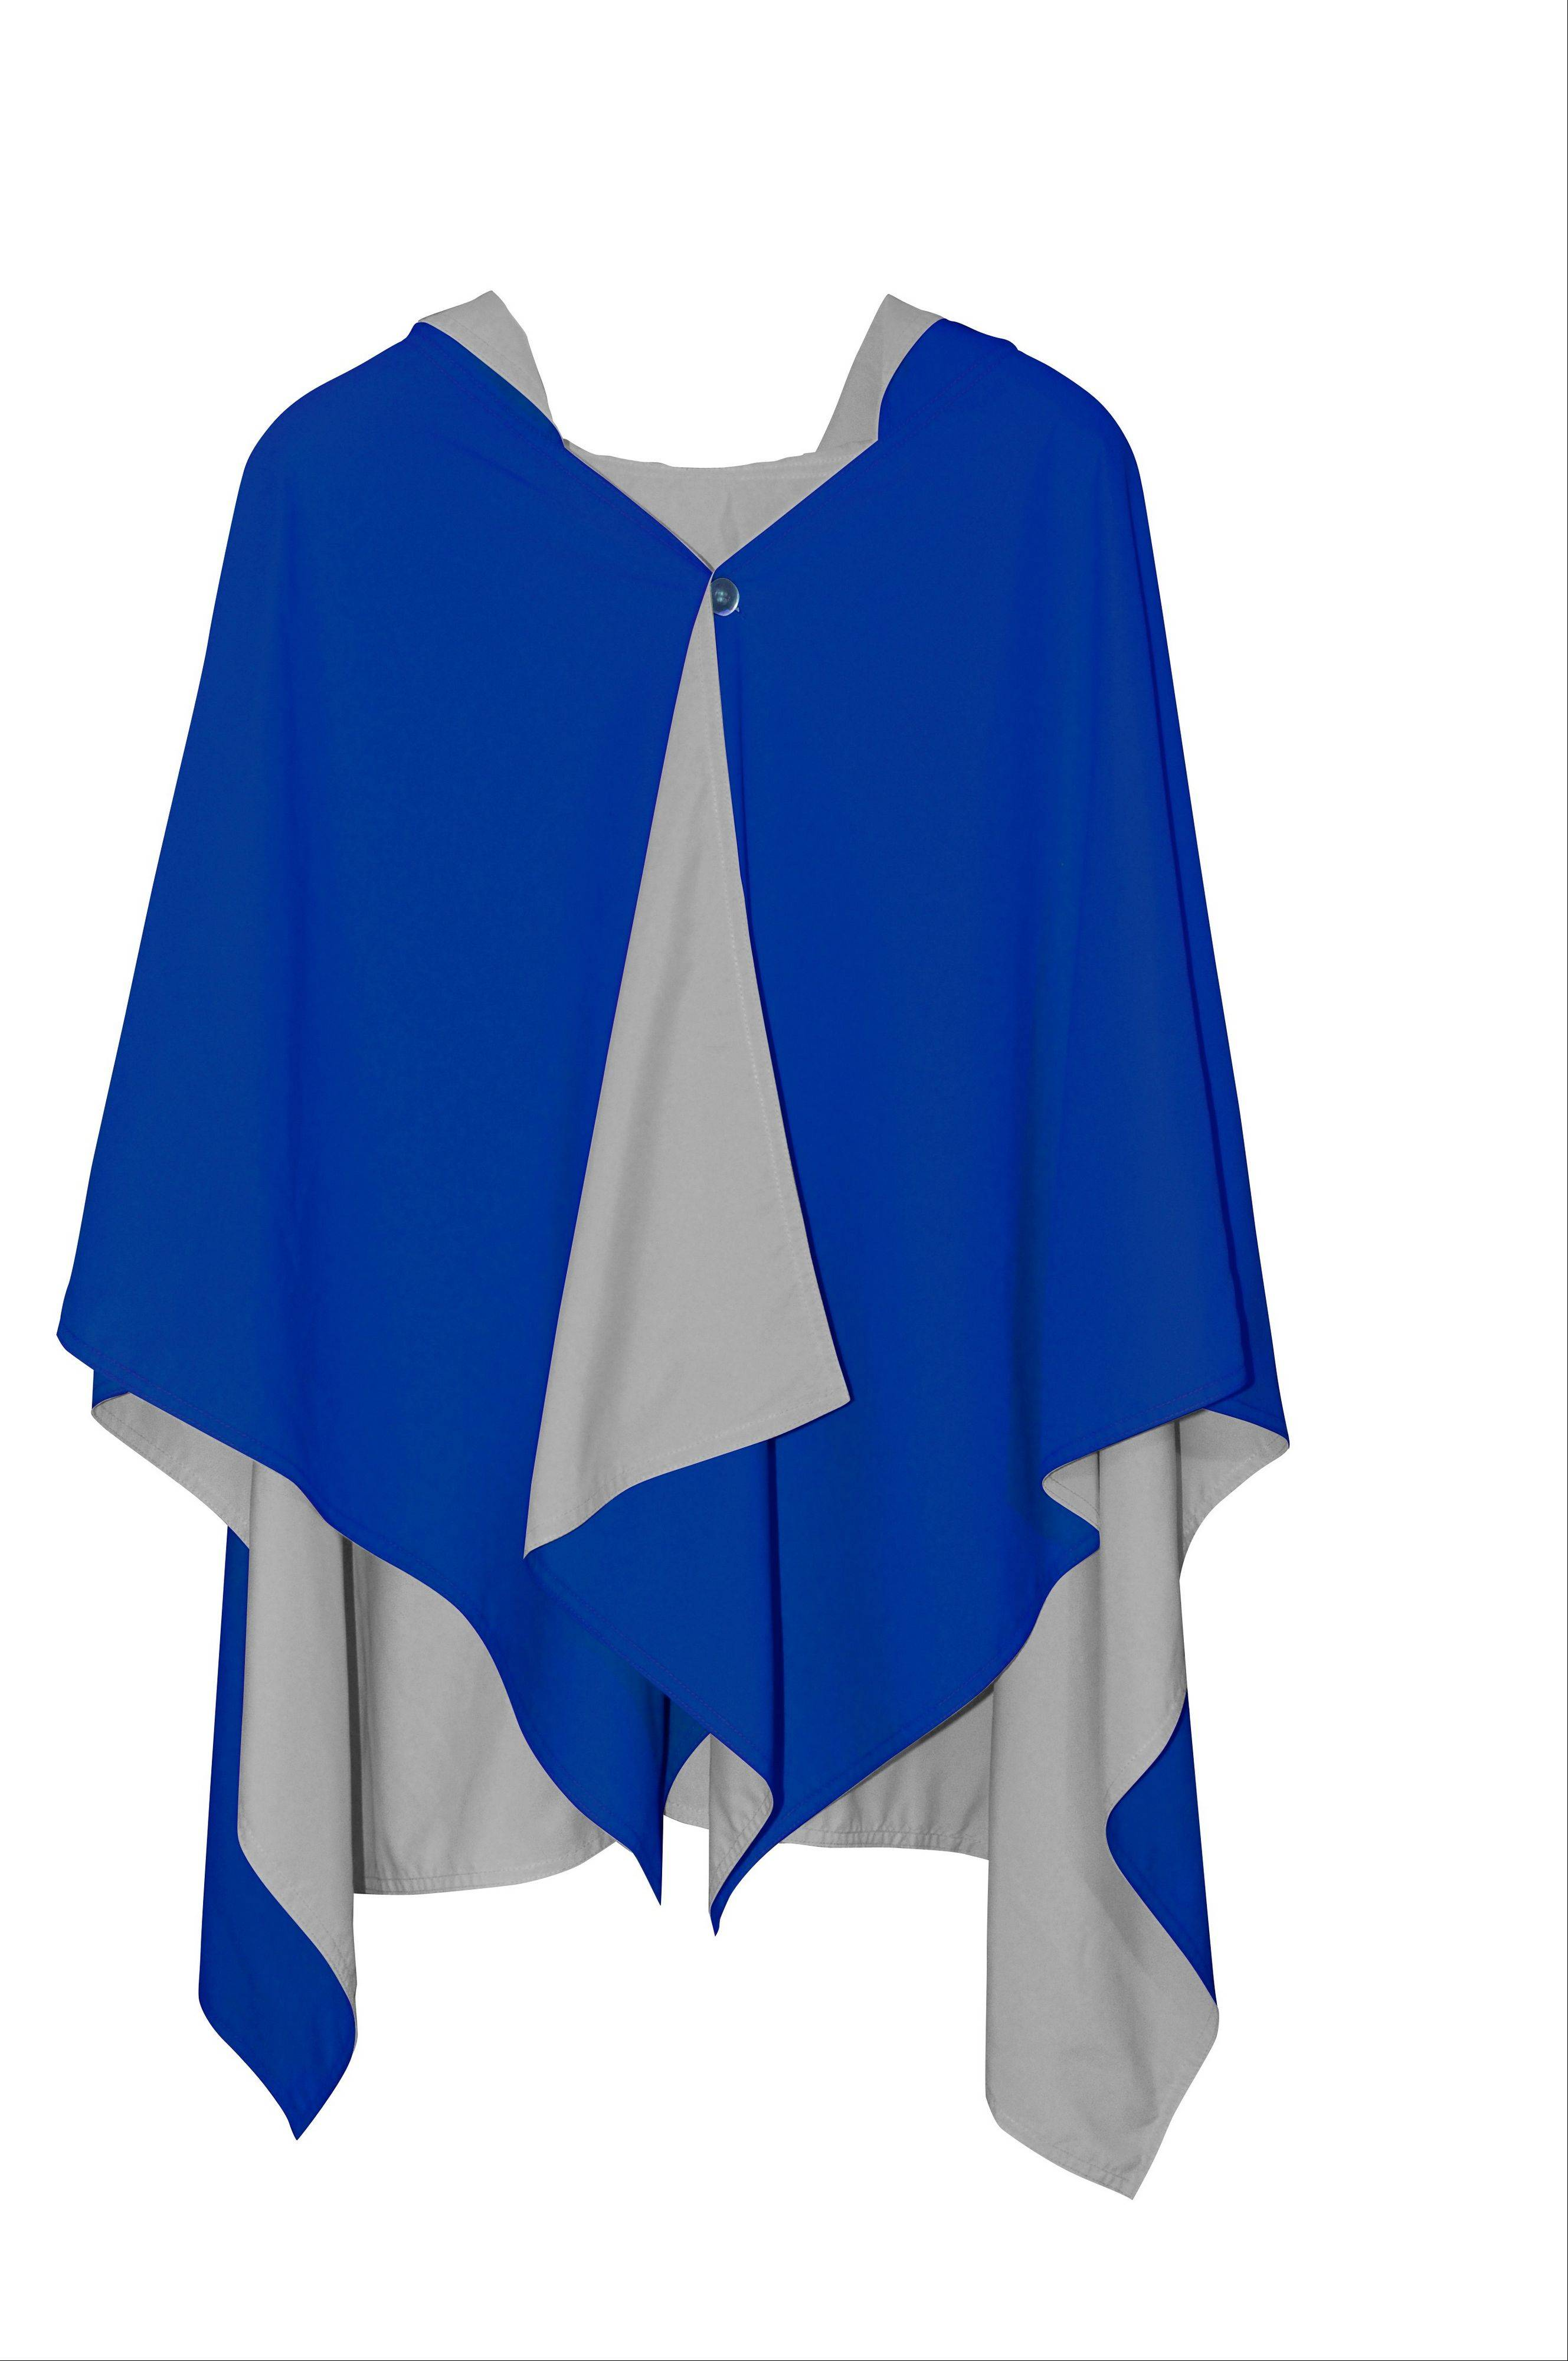 The hooded Rainrap weighs under 9 ounces, drapes like a cape and is reversible. It comes in eight two-color combinations and water beads off the silky fabric.